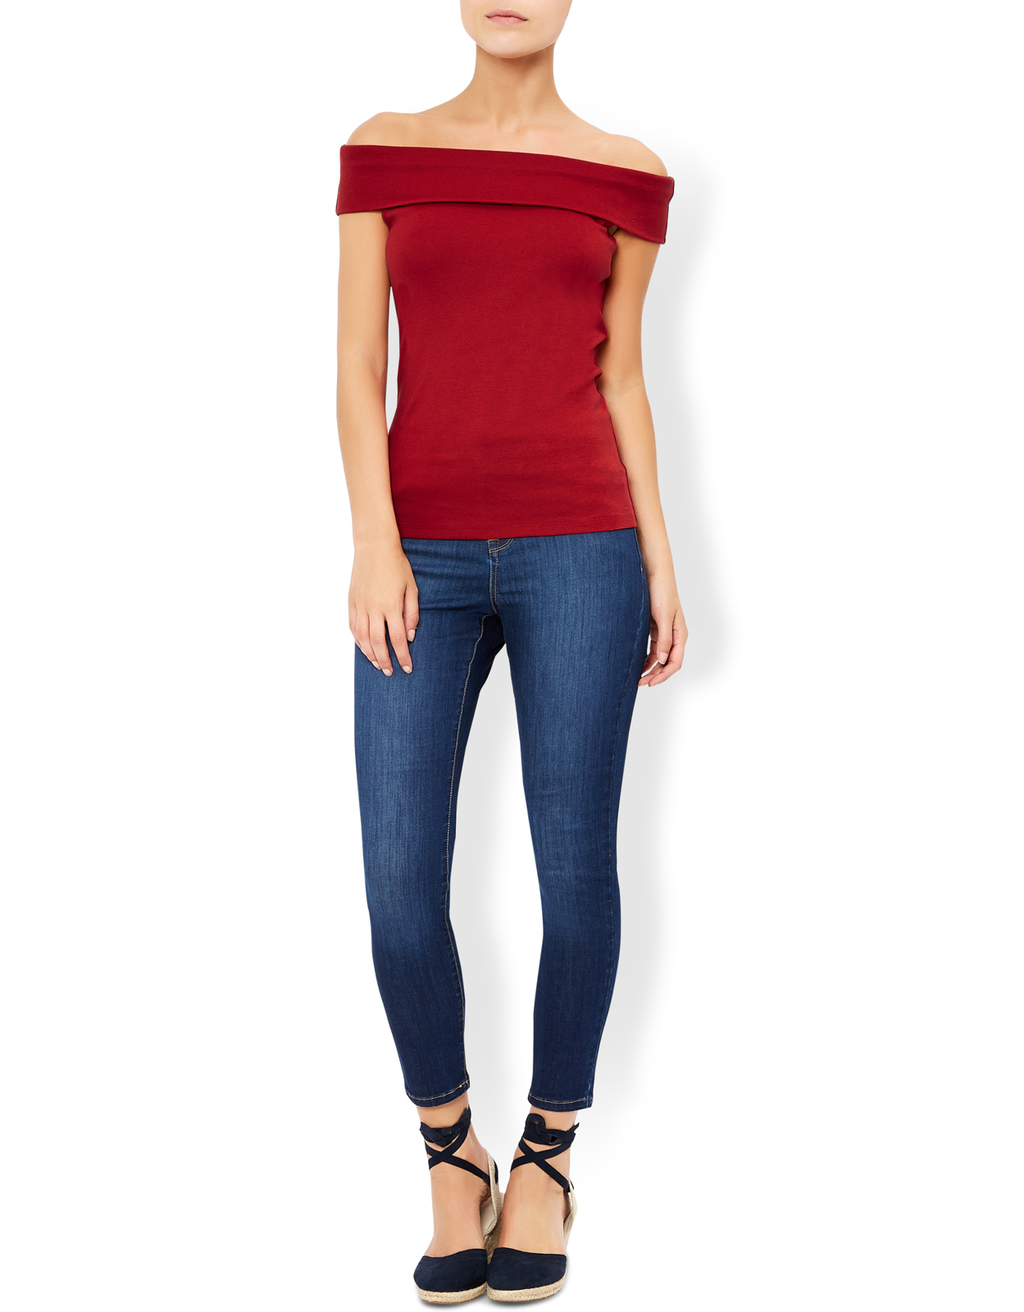 Dita Bardot Top - neckline: off the shoulder; sleeve style: capped; pattern: plain; predominant colour: burgundy; occasions: casual; length: standard; style: top; fibres: cotton - 100%; fit: body skimming; sleeve length: short sleeve; texture group: jersey - clingy; pattern type: fabric; season: a/w 2016; wardrobe: highlight